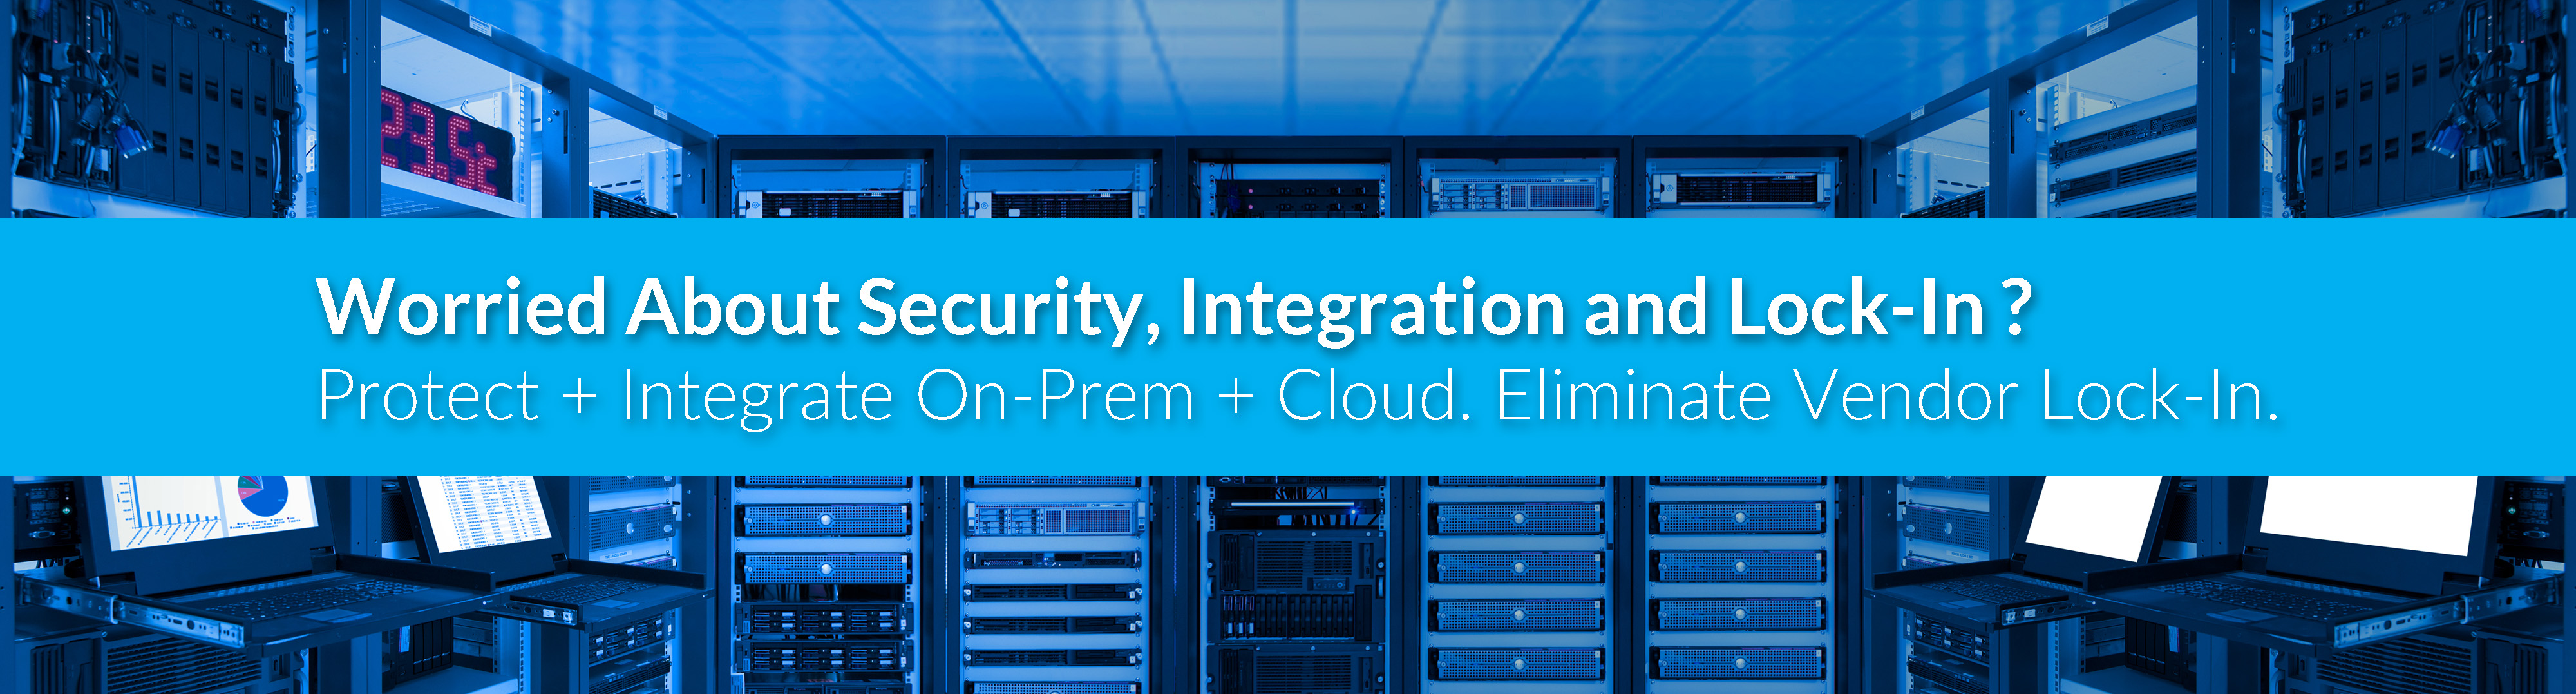 Worried About Security, Integration and Vendor Lock-In ?